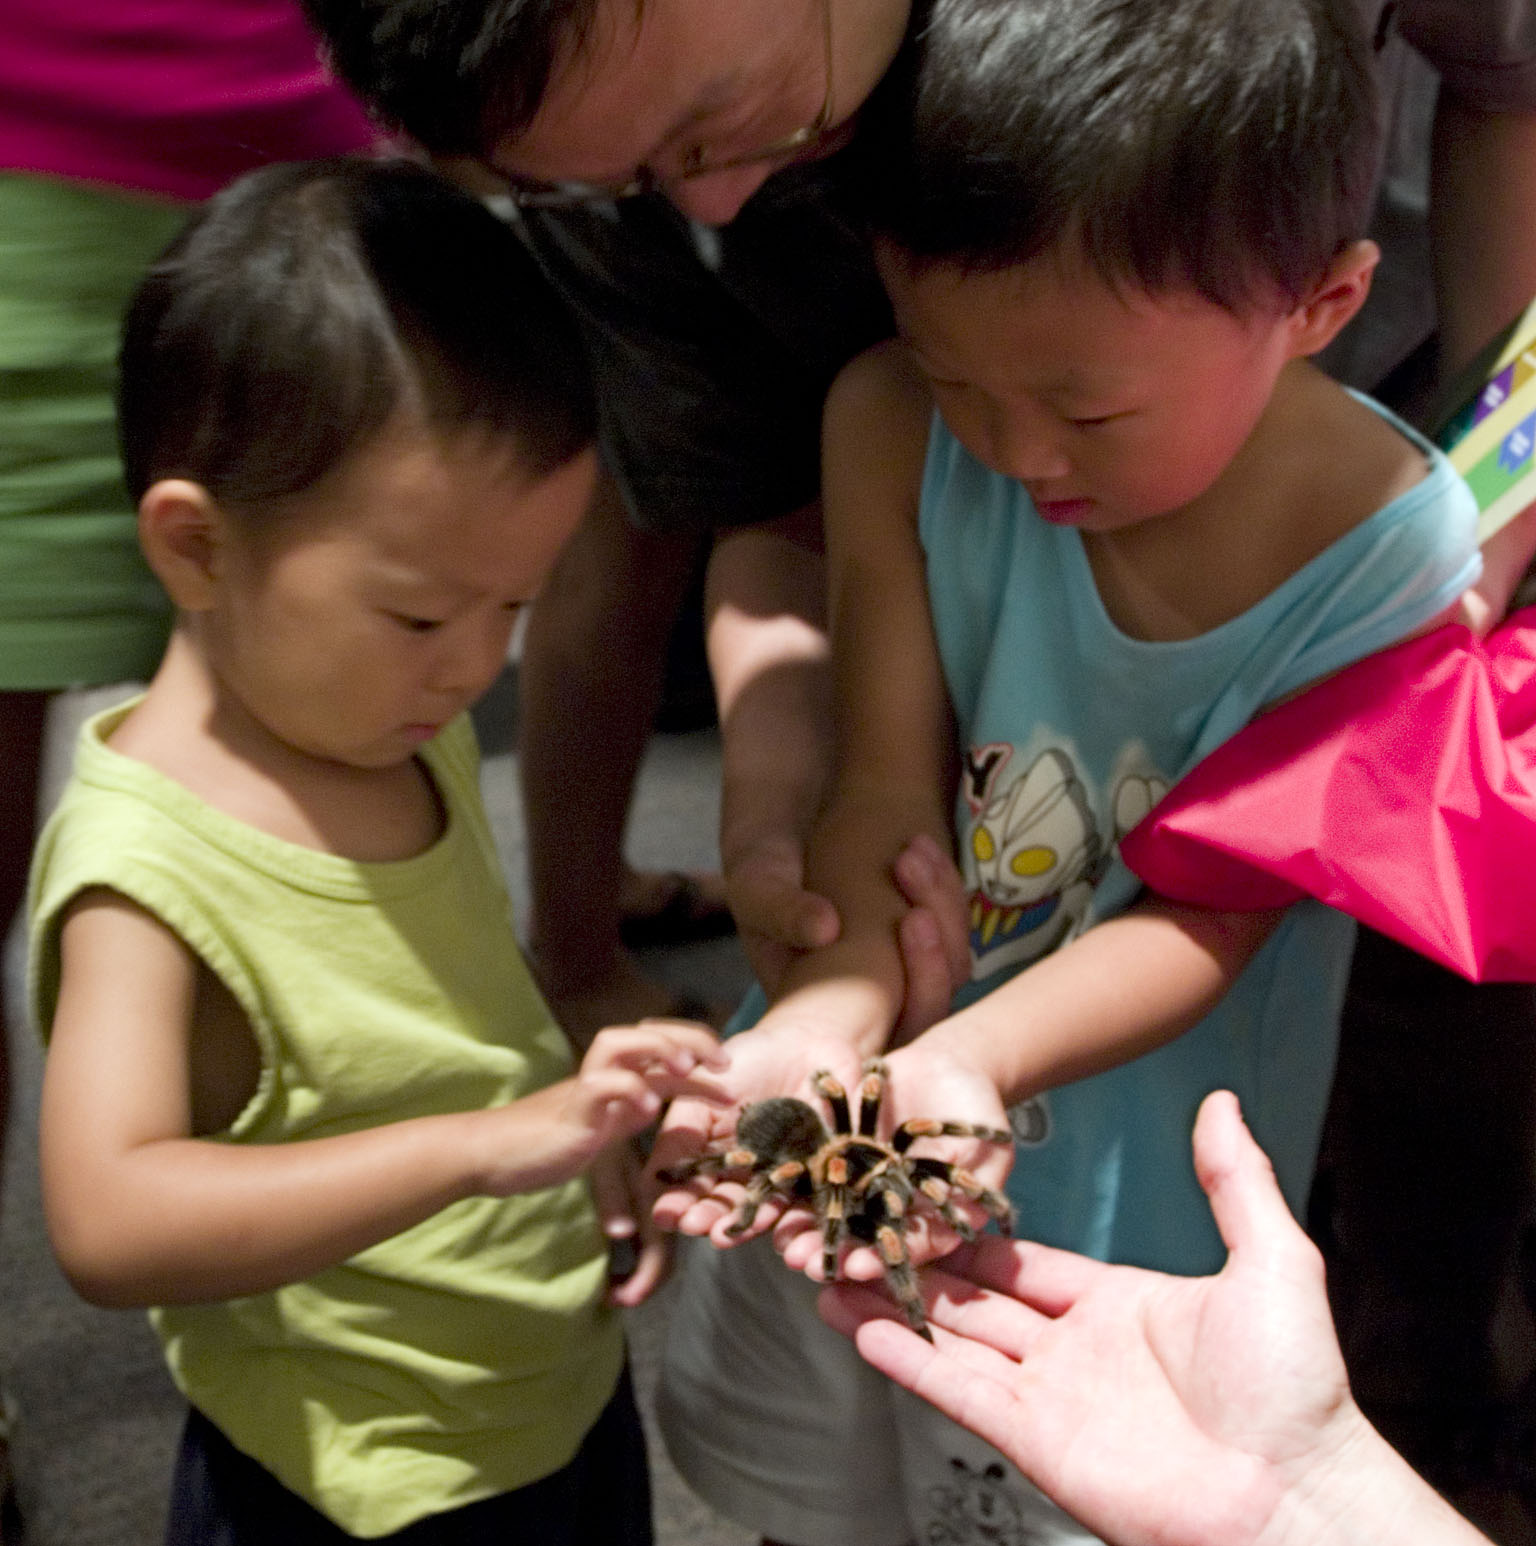 Two children hold and pet a tarantula.